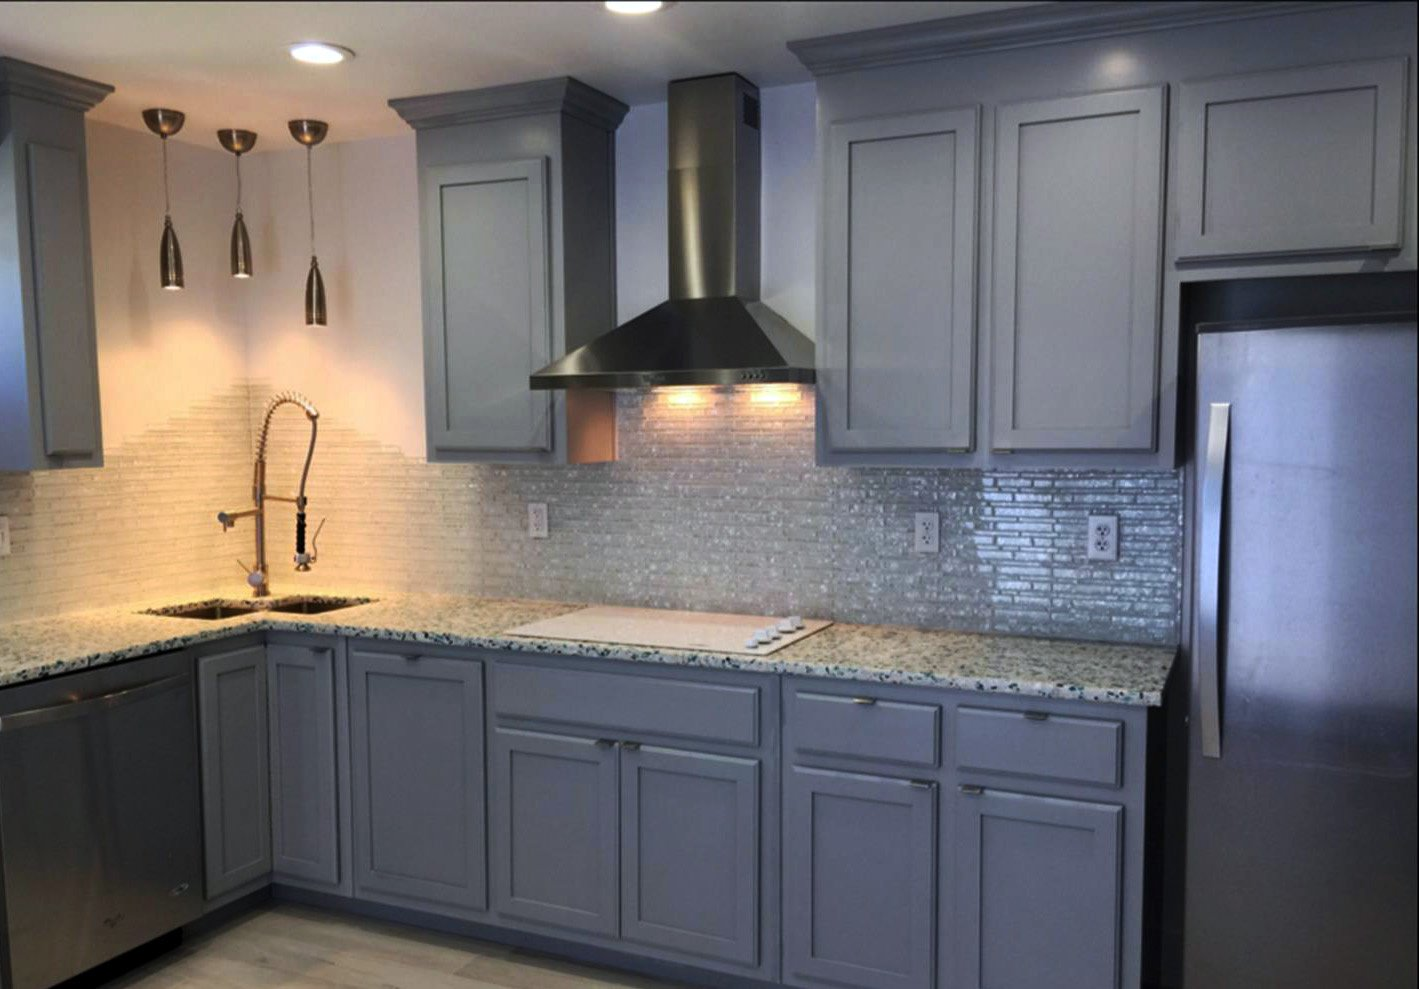 Vetrazzo_recycled_glass_countertops_cost_Bretagne_Blue2[1]